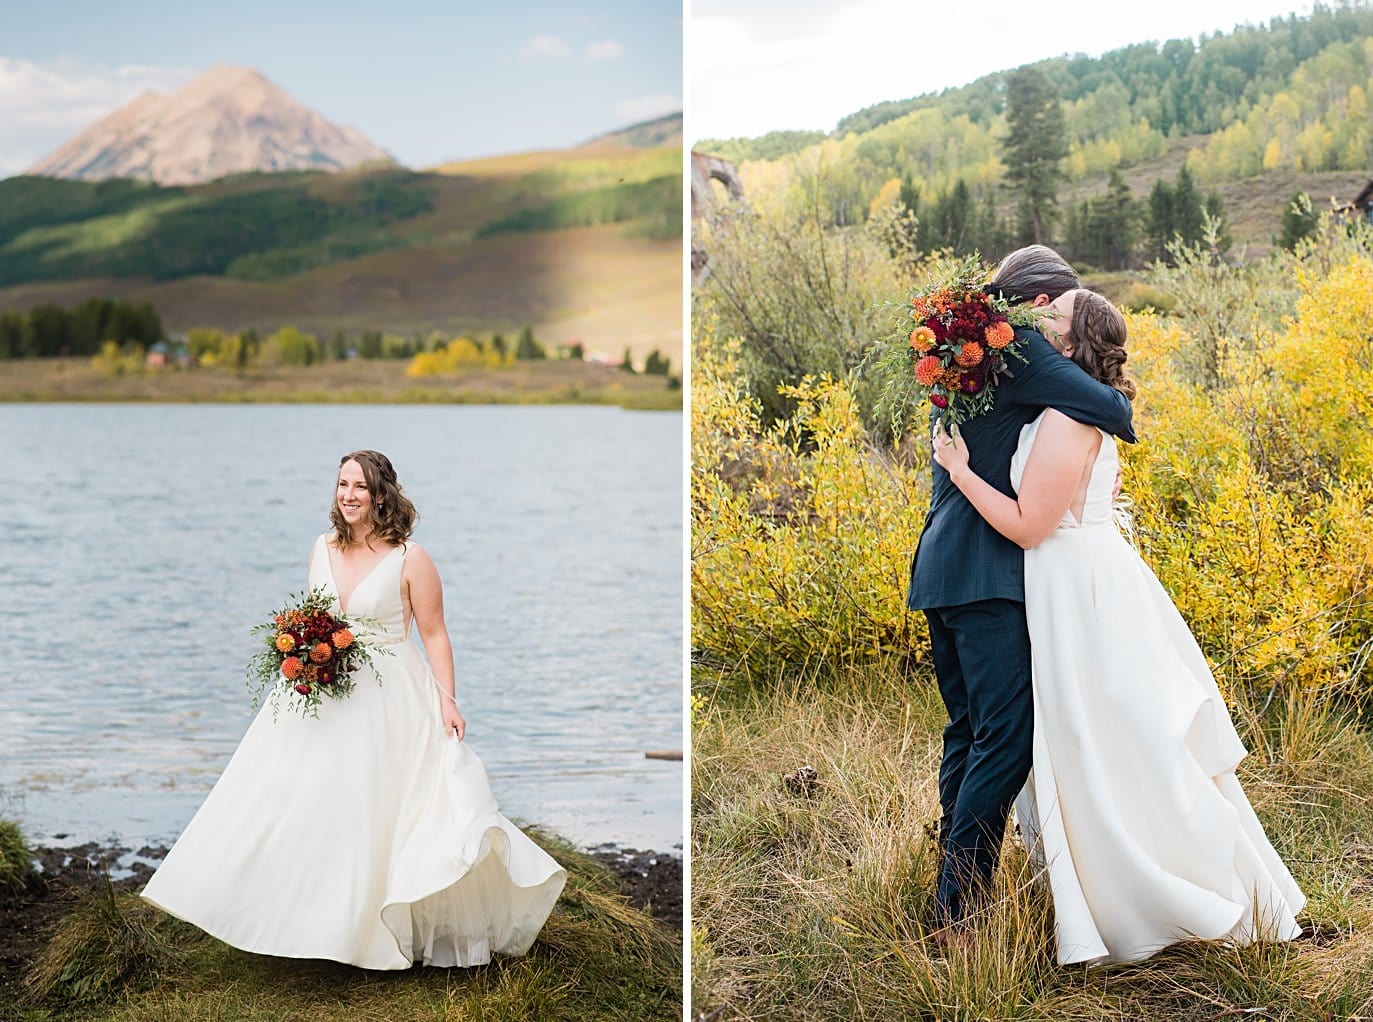 first look during fall elopement at Crested Butte Elopement by Crested Butte elopement photographer Jennie Crate